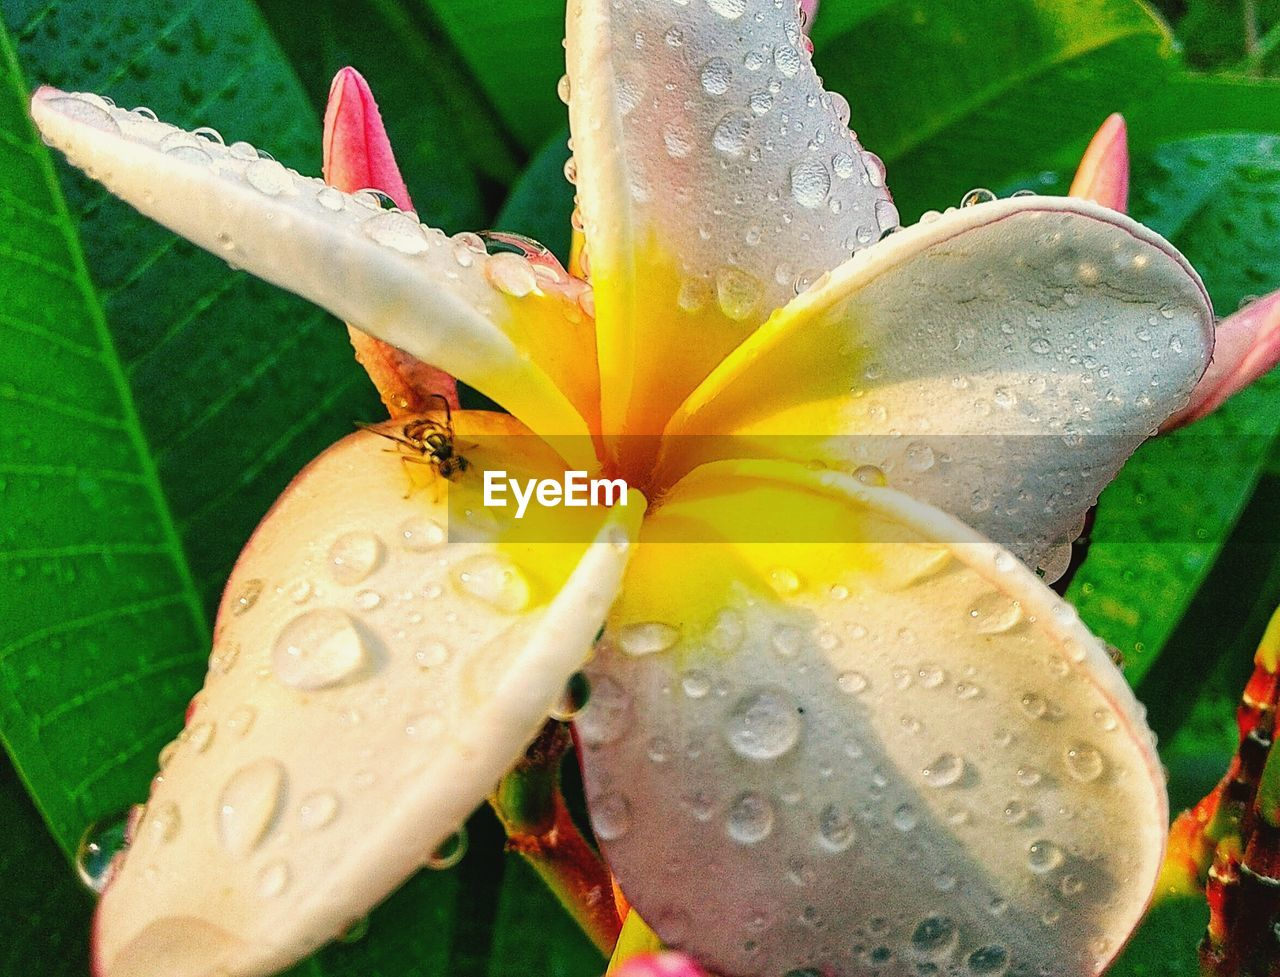 flower, flowering plant, water, plant, drop, wet, freshness, vulnerability, fragility, beauty in nature, close-up, growth, inflorescence, petal, flower head, nature, leaf, pollen, no people, outdoors, rain, raindrop, rainy season, purity, dew